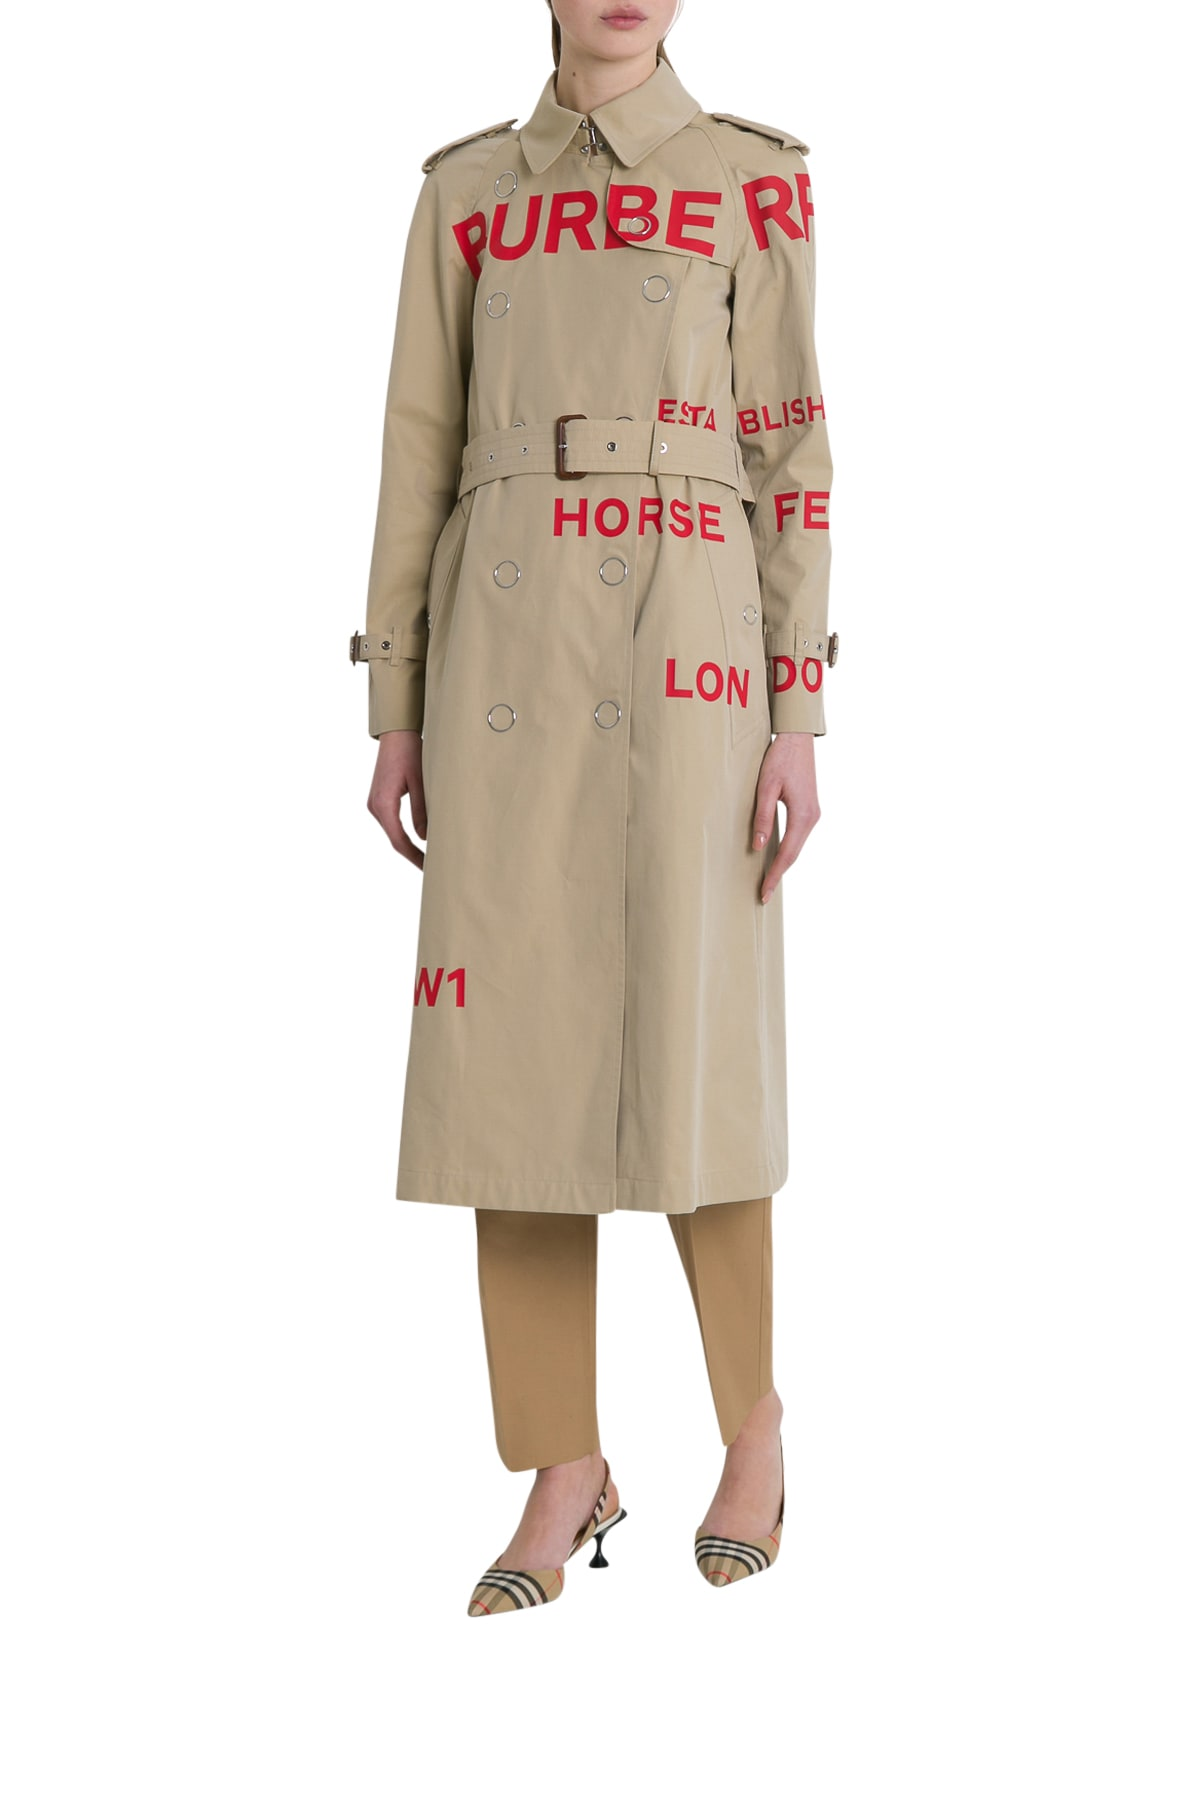 Photo of  Burberry Wharfbridge Trench Coat- shop Burberry jackets online sales